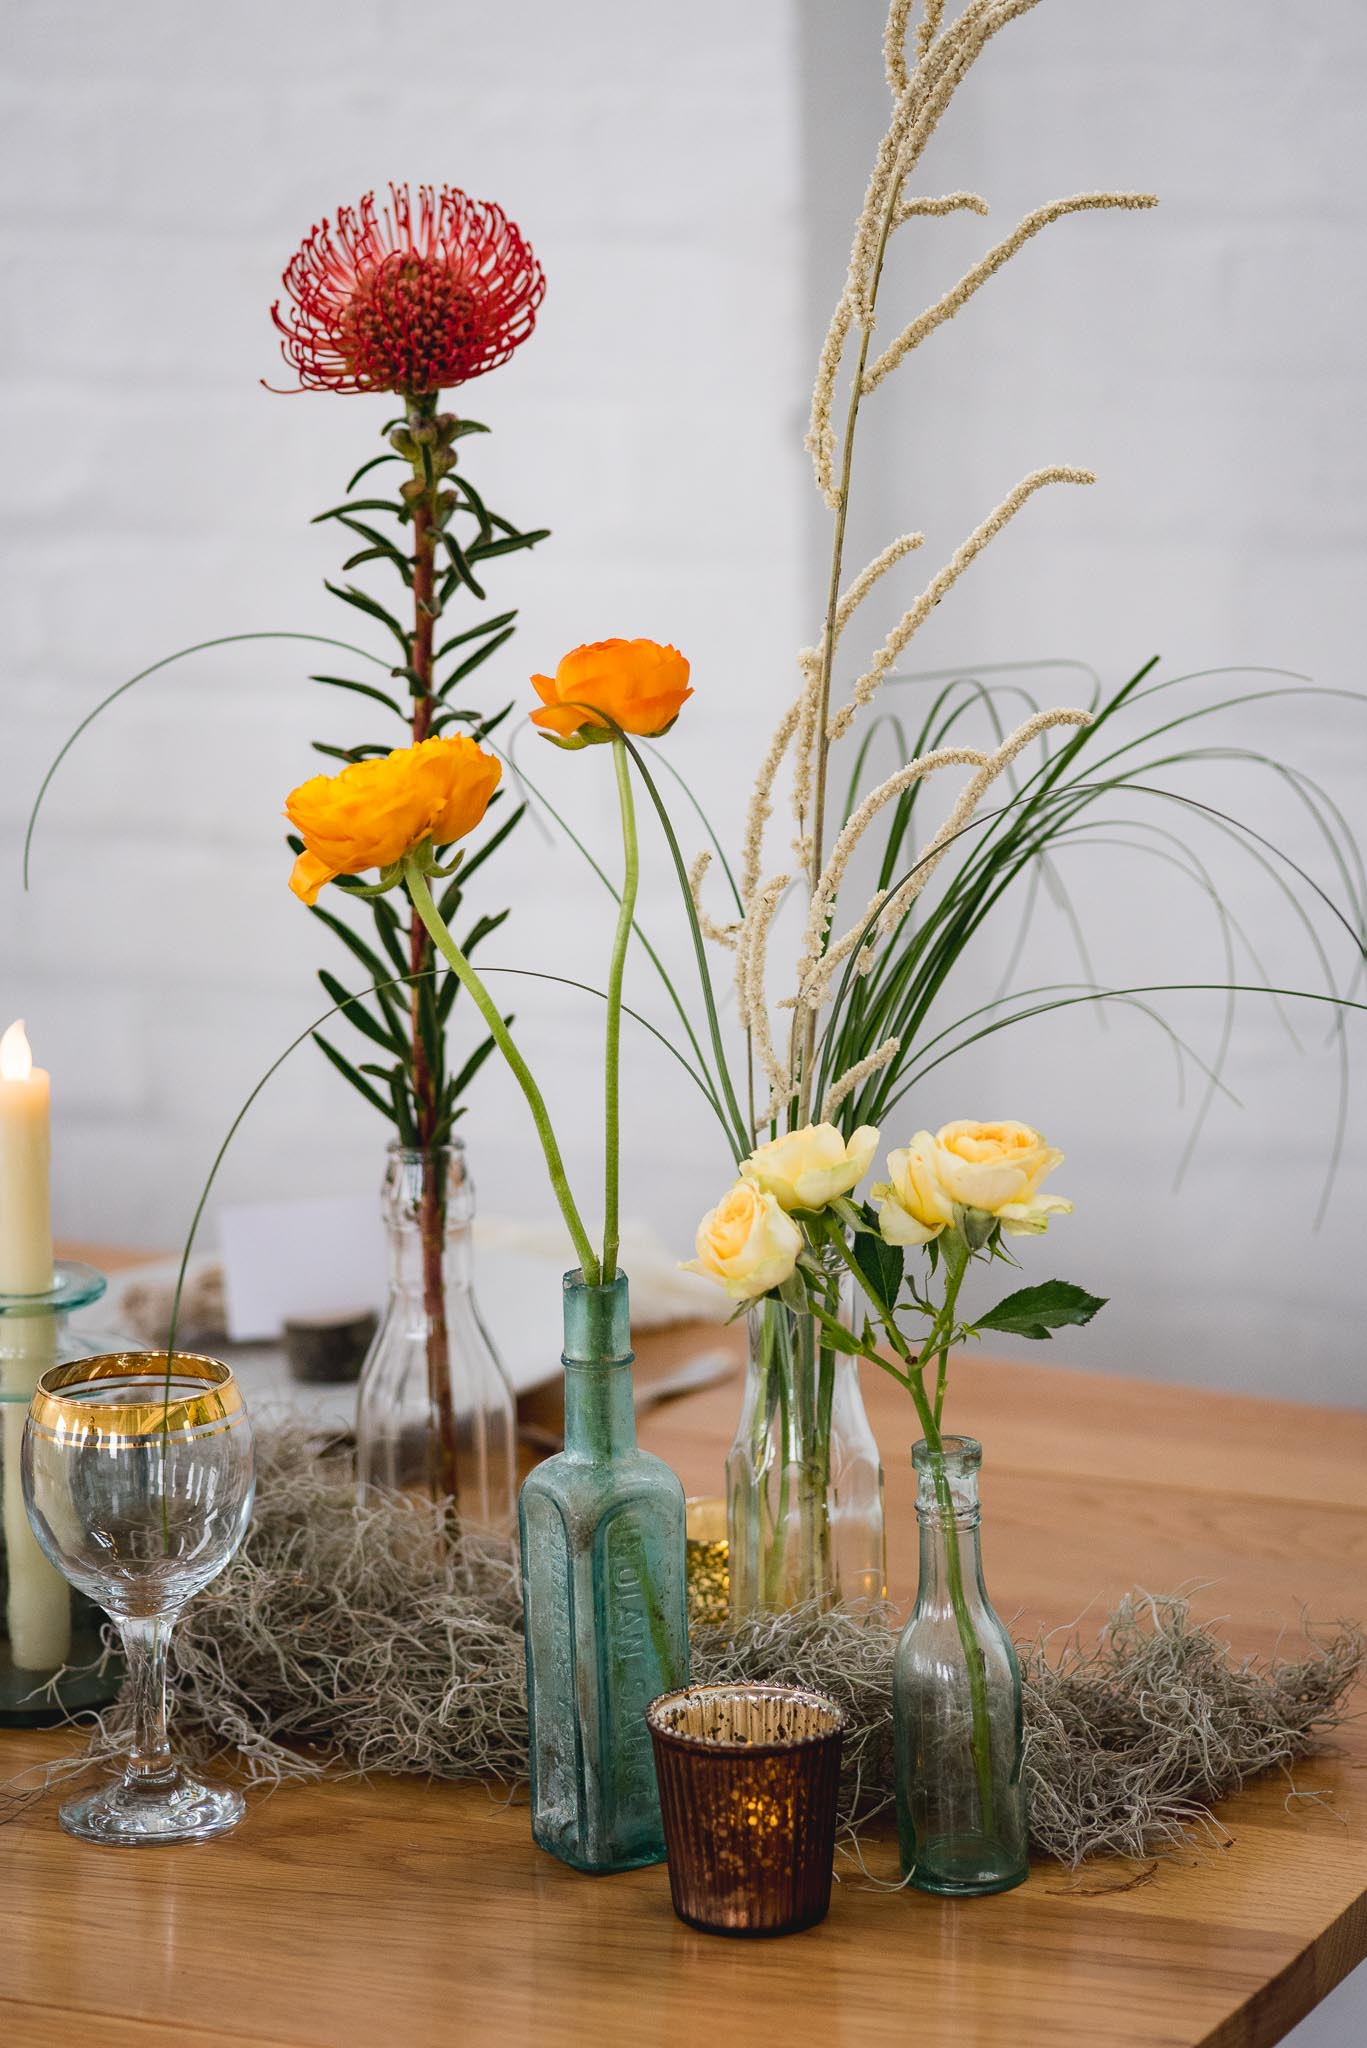 Simple boho wedding flowers in vintage jars as seen in our blog post for a  southwestern styled shoot